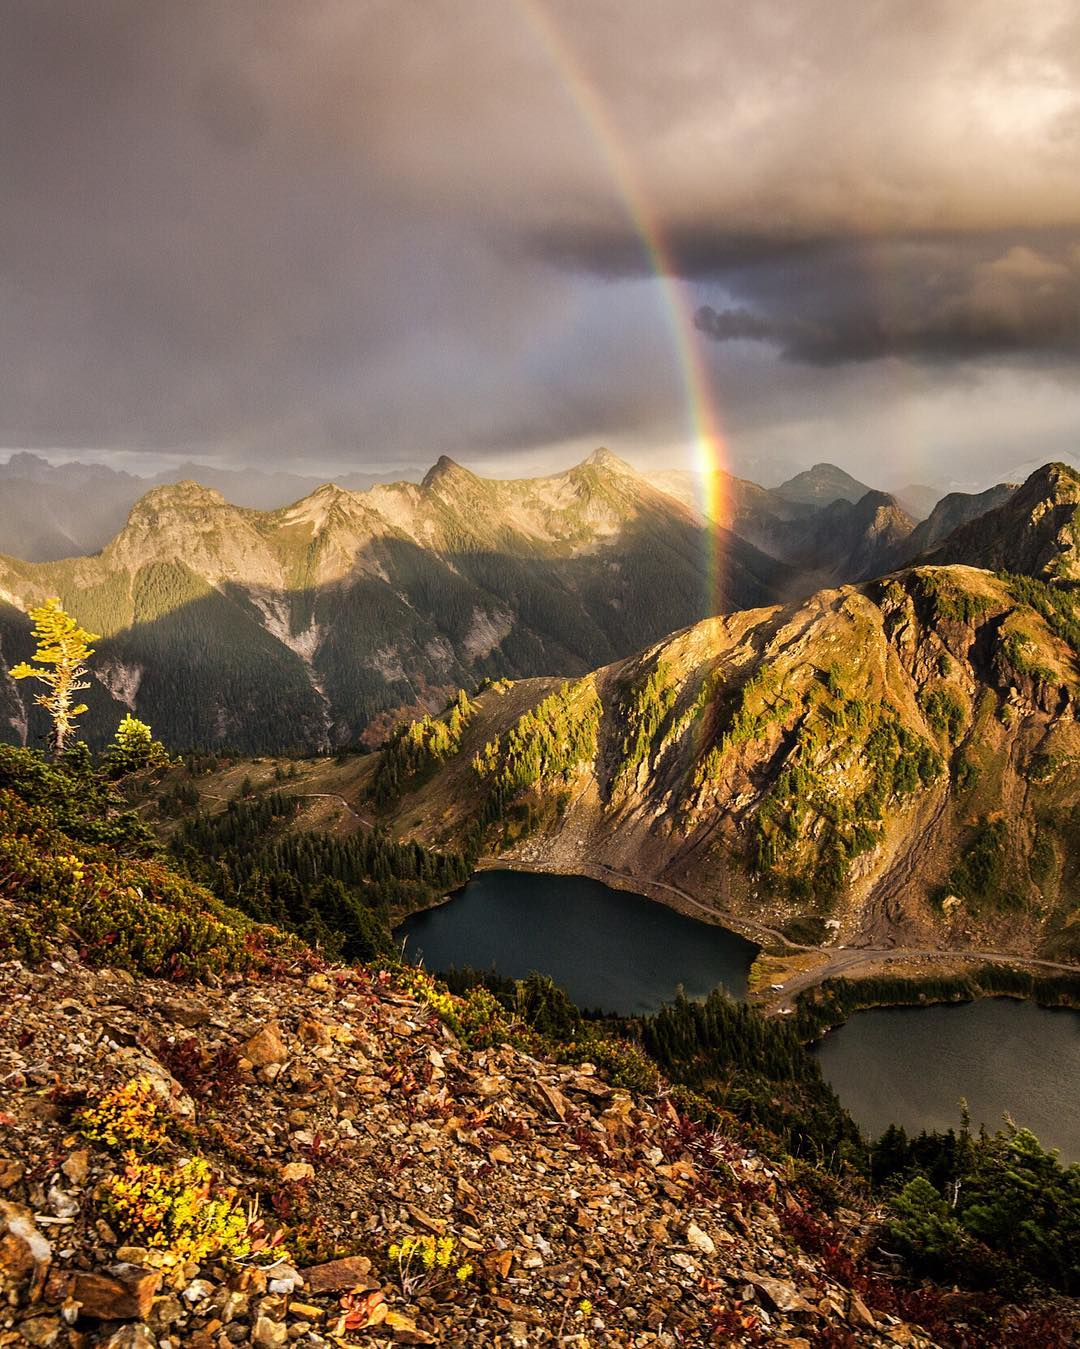 "RADPARKS TAKEOVER W CHRISTIN  @christinhealey on #northerncascades ""Northern Cascades: Those fleeting moments out there in the wild, where the mountains give you brief glimpses of magic. This rainbow mountain goodness is from one of my favorite spots..."